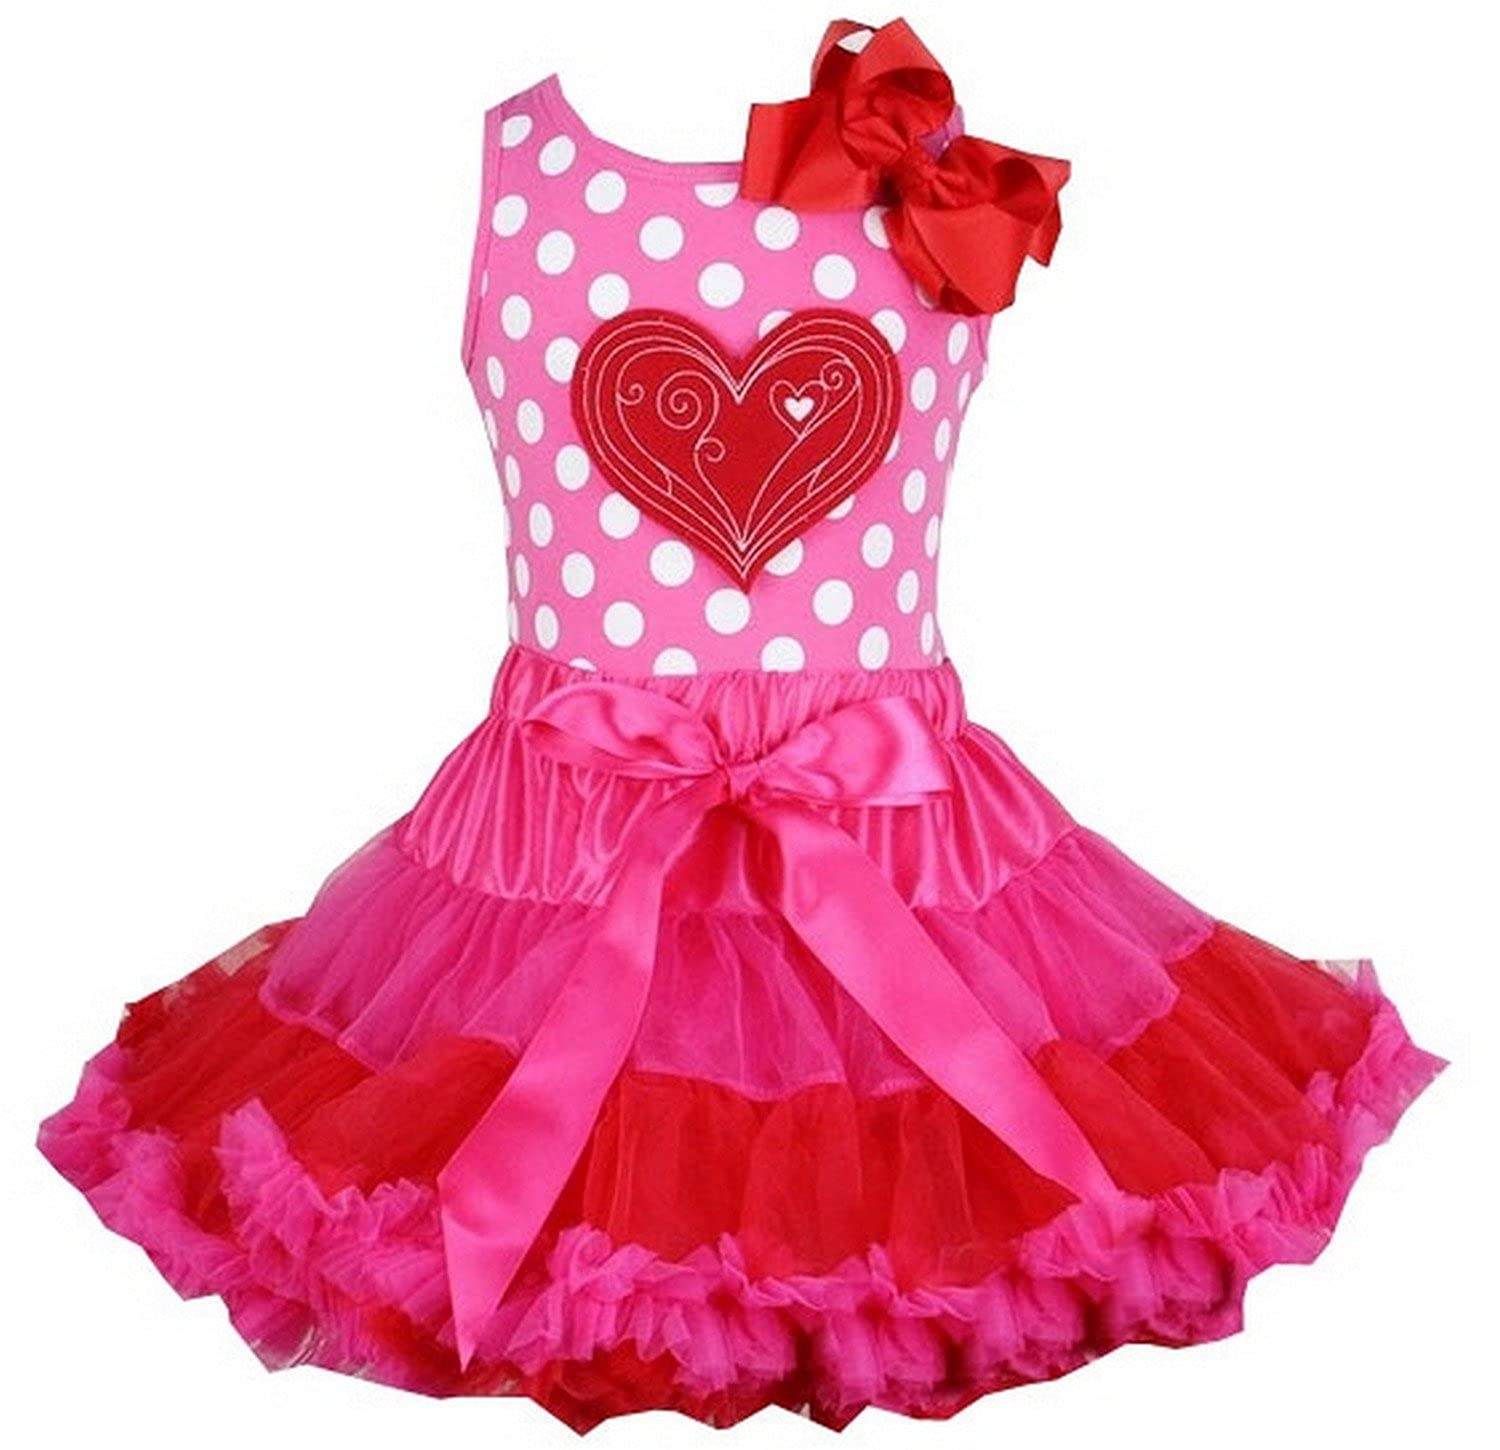 Kirei Sui Girls Hot Pink Red Pettiskirt Polka Dots Heart Tank Top